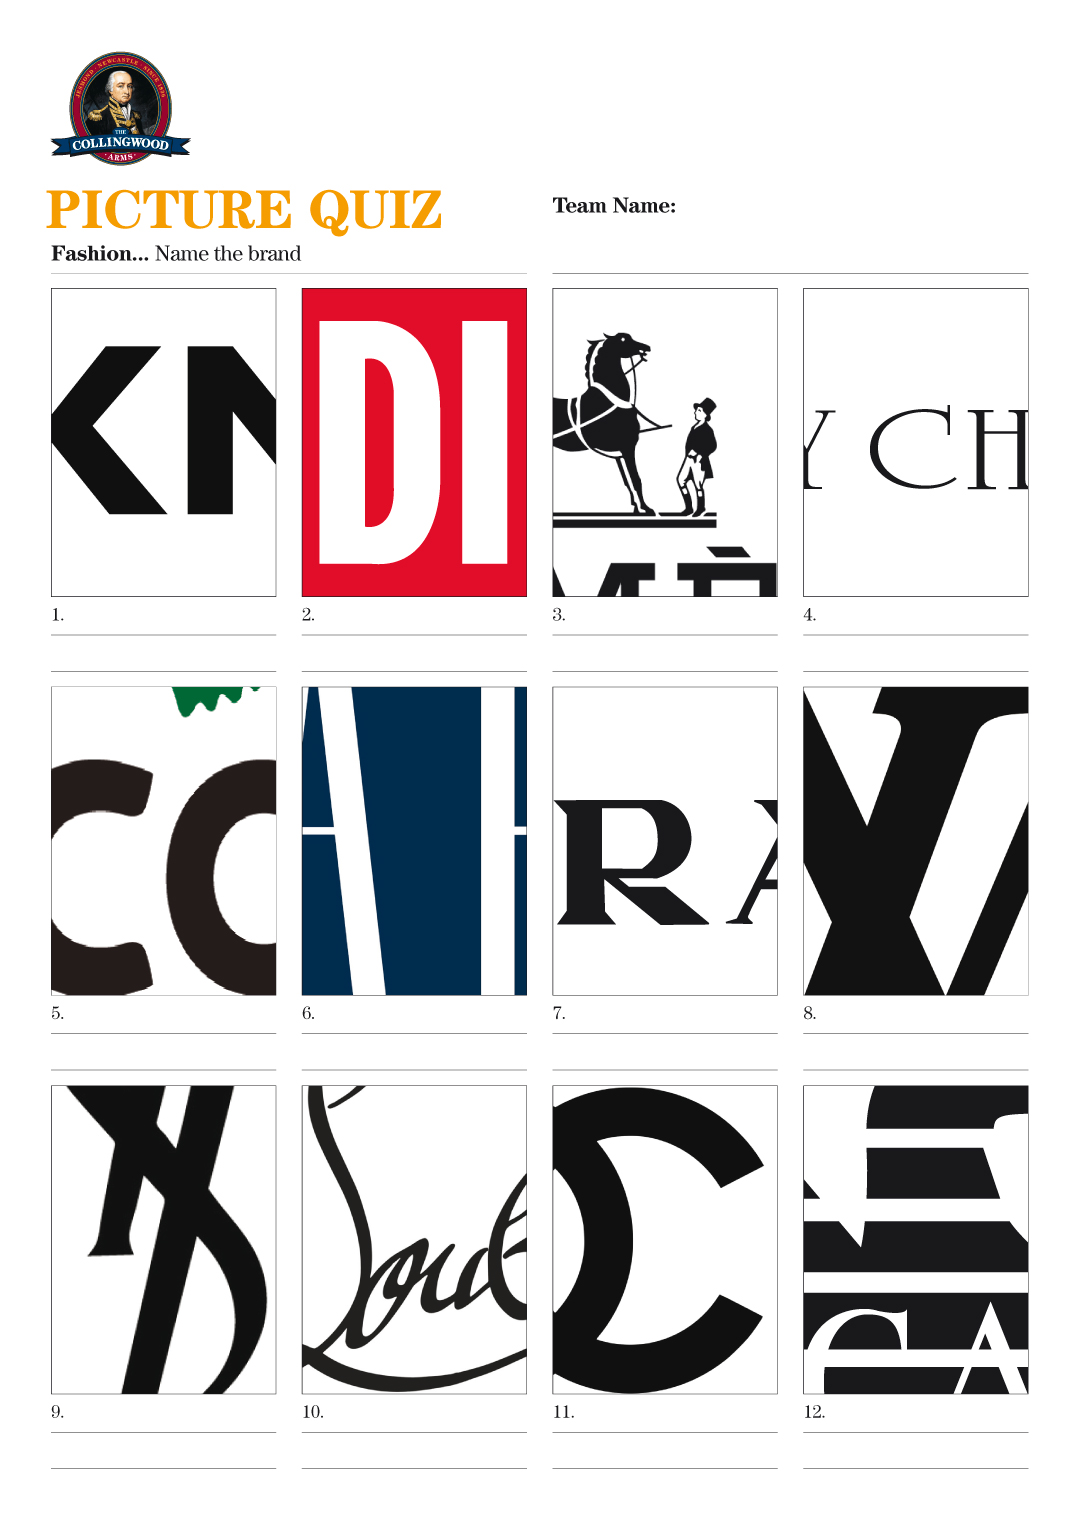 with cropped logos of the top fashion brands for our Picture Quiz